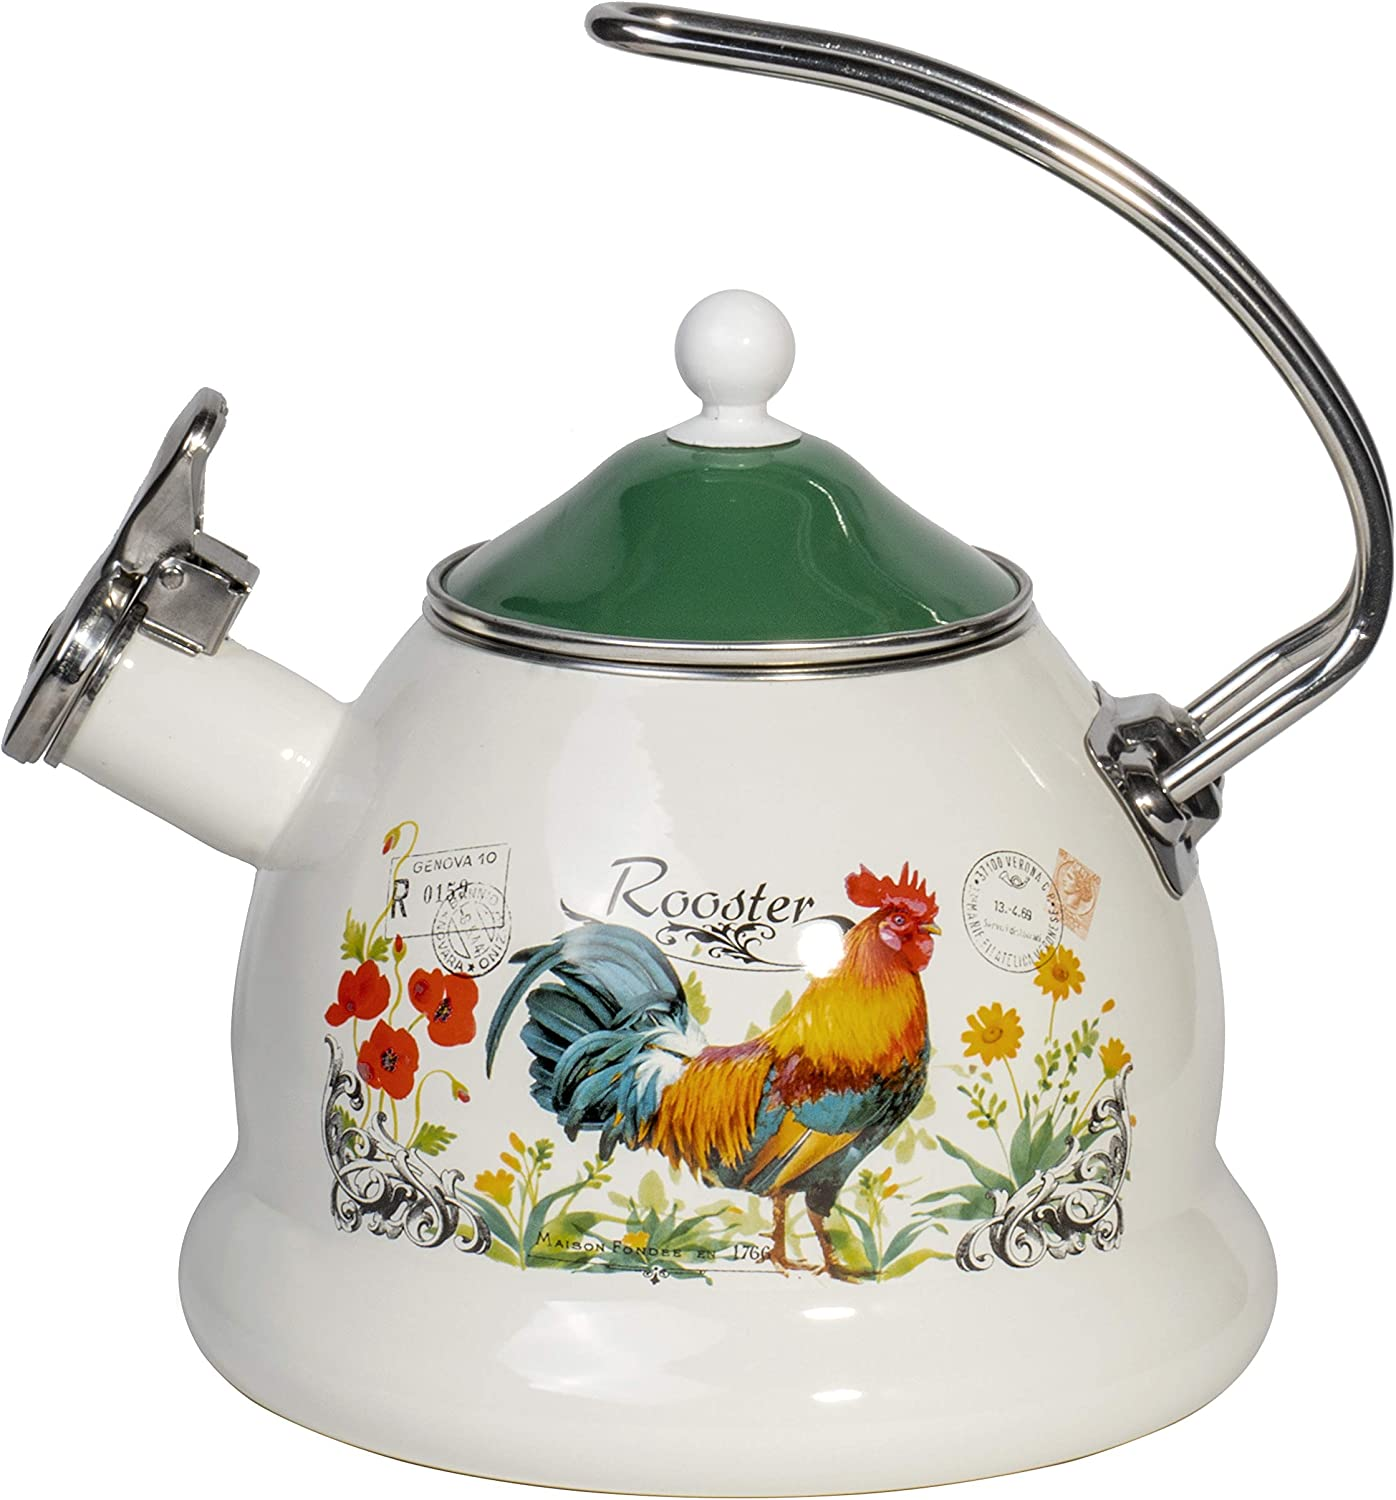 Enamel on Steel Stove Top Whistling Teapot Kettle - Retro Classic Design - 2.3 Quarts